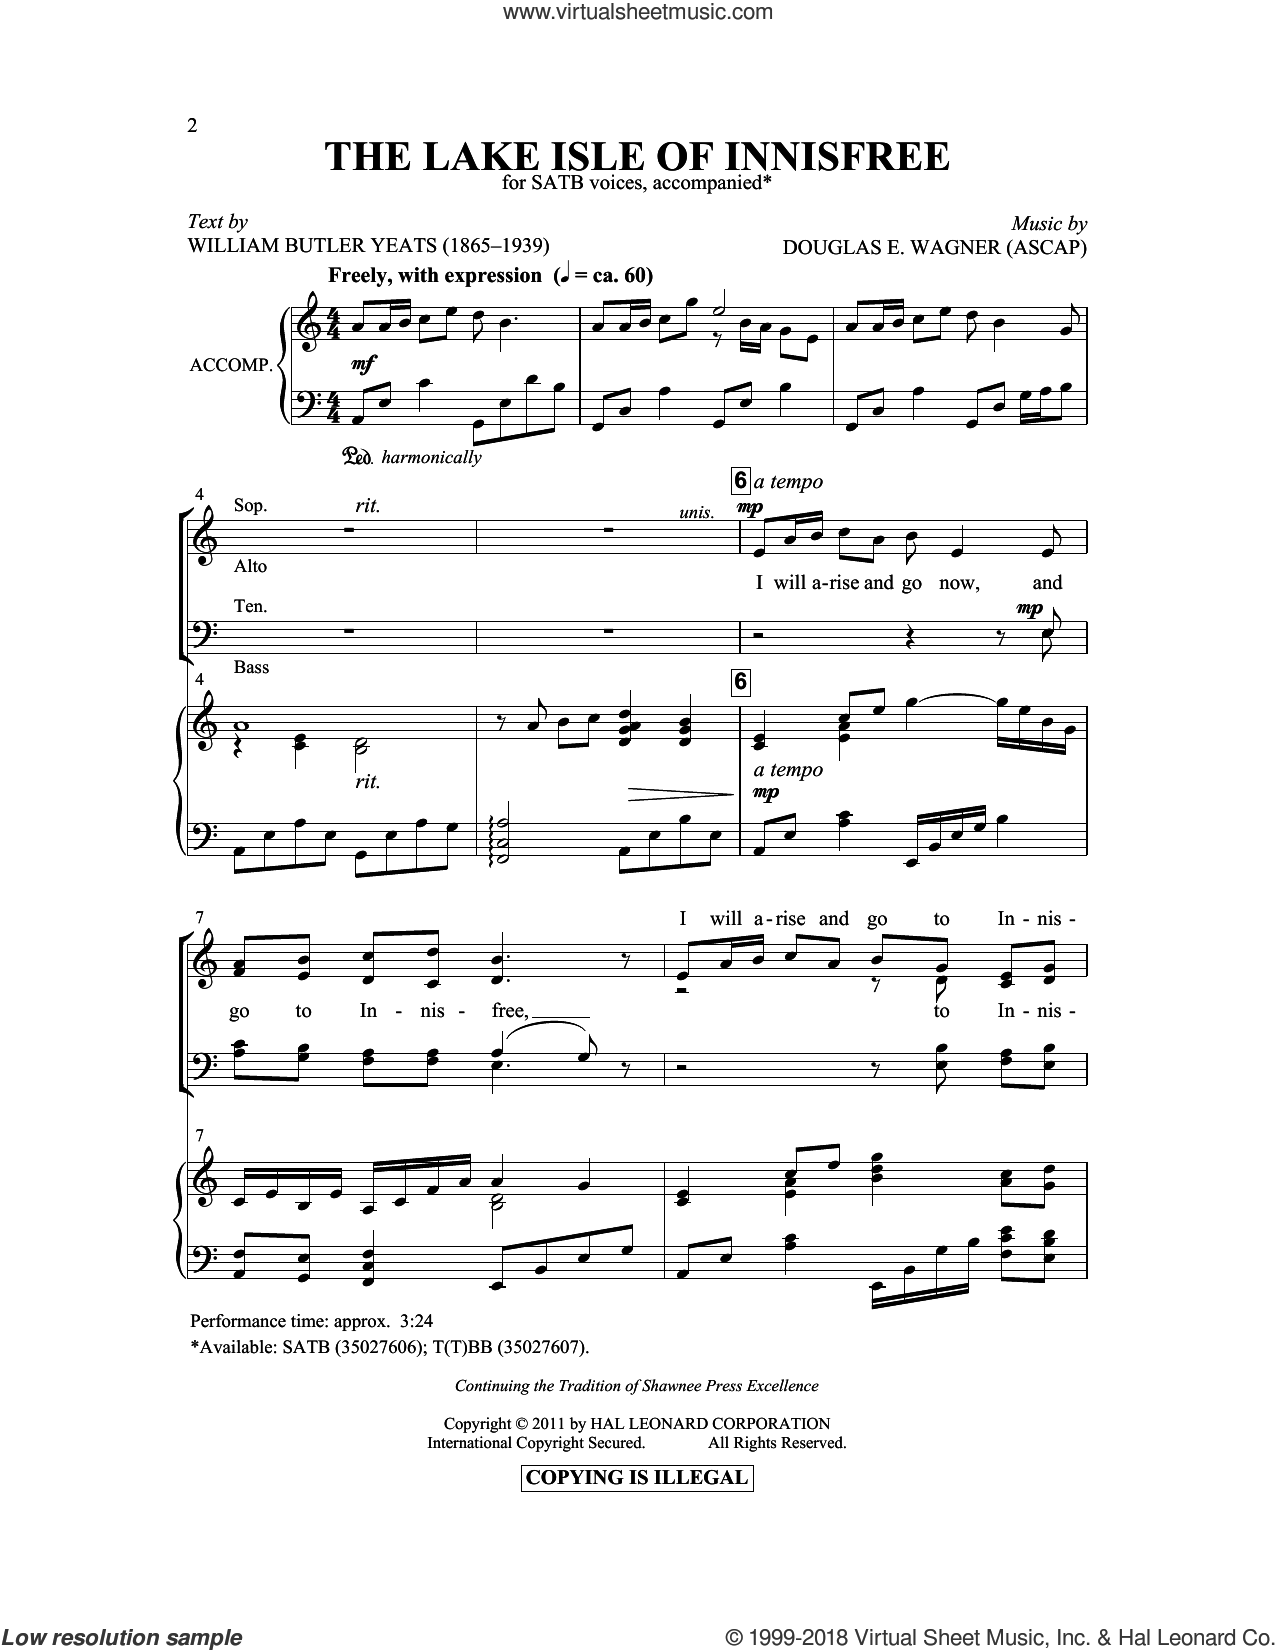 The Lake Isle Of Innisfree sheet music for choir and piano (SATB) by Douglas E. Wagner